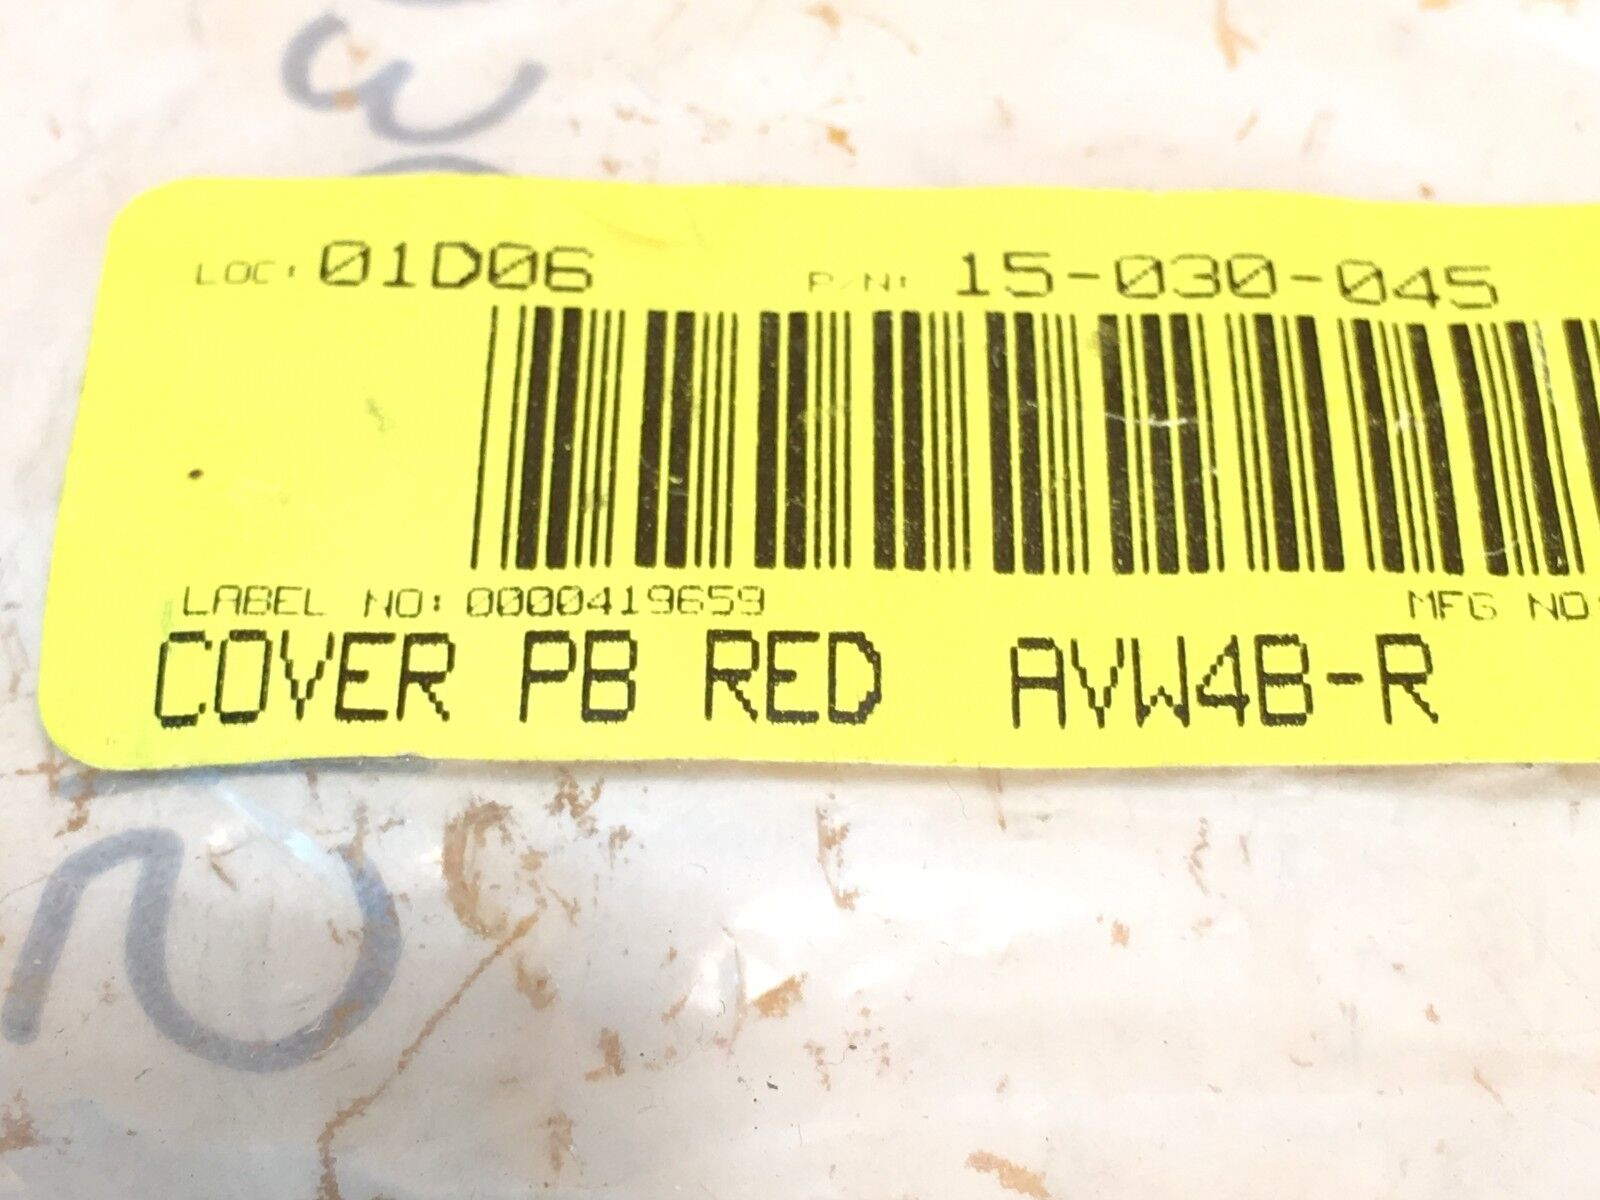 ***NEW*** IDEC AVW4B-R RED LENS 40 mm EMERGENCY OFF PUSHBUTTON COVER